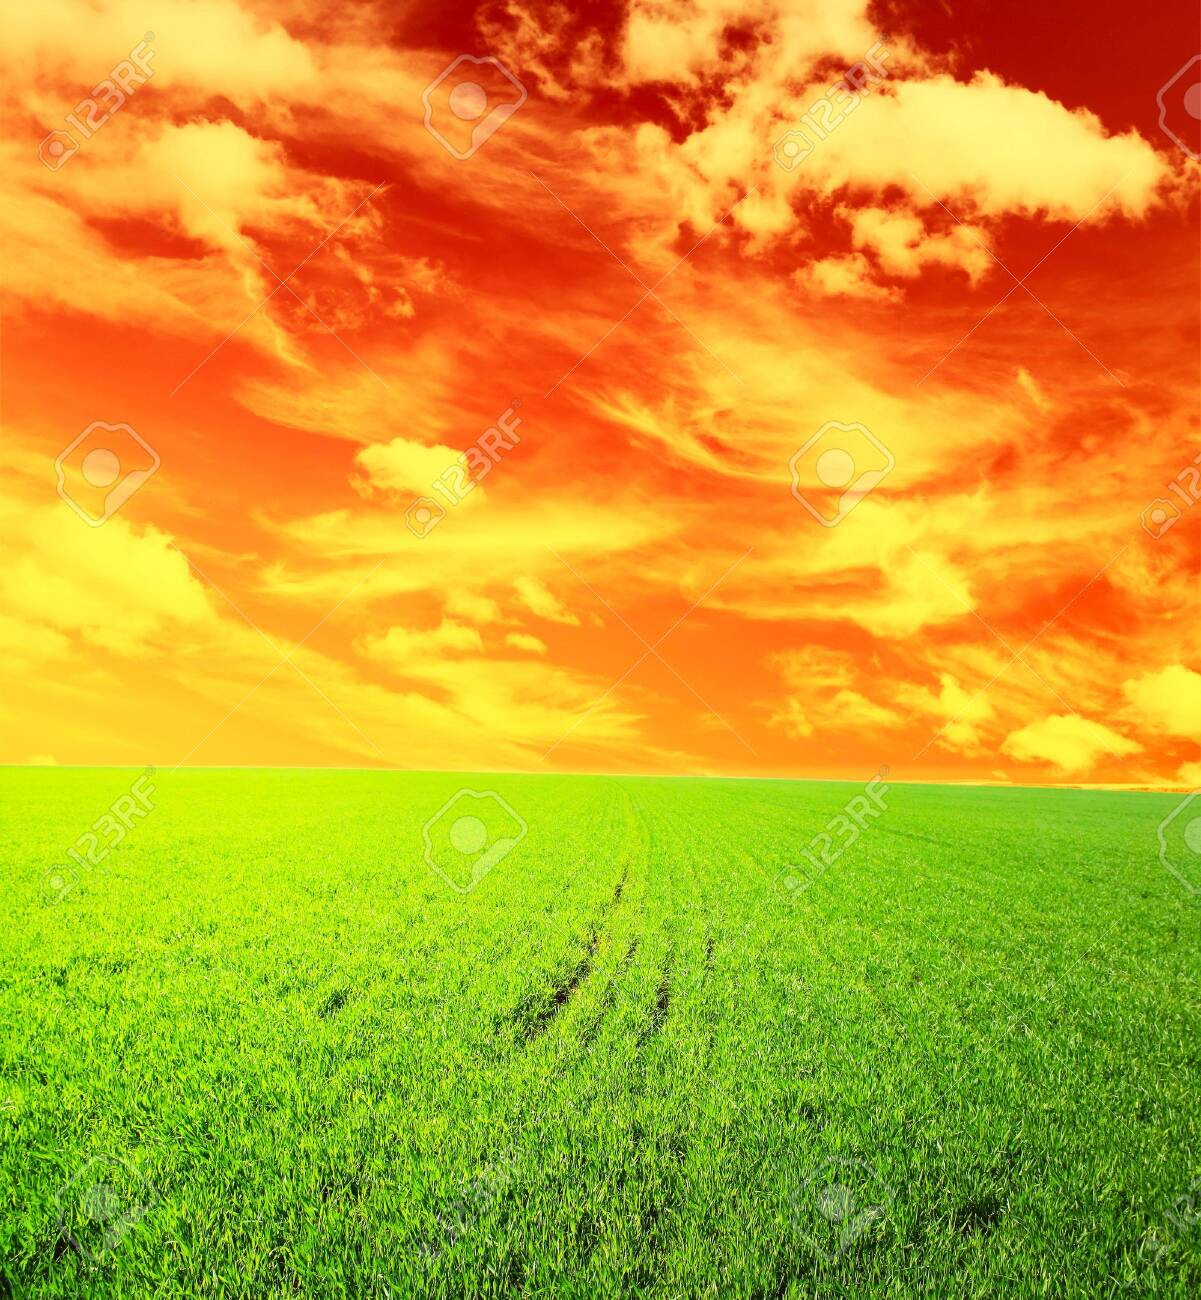 Meadow with green grass under orange sunset with clouds Stock Photo - 5776848